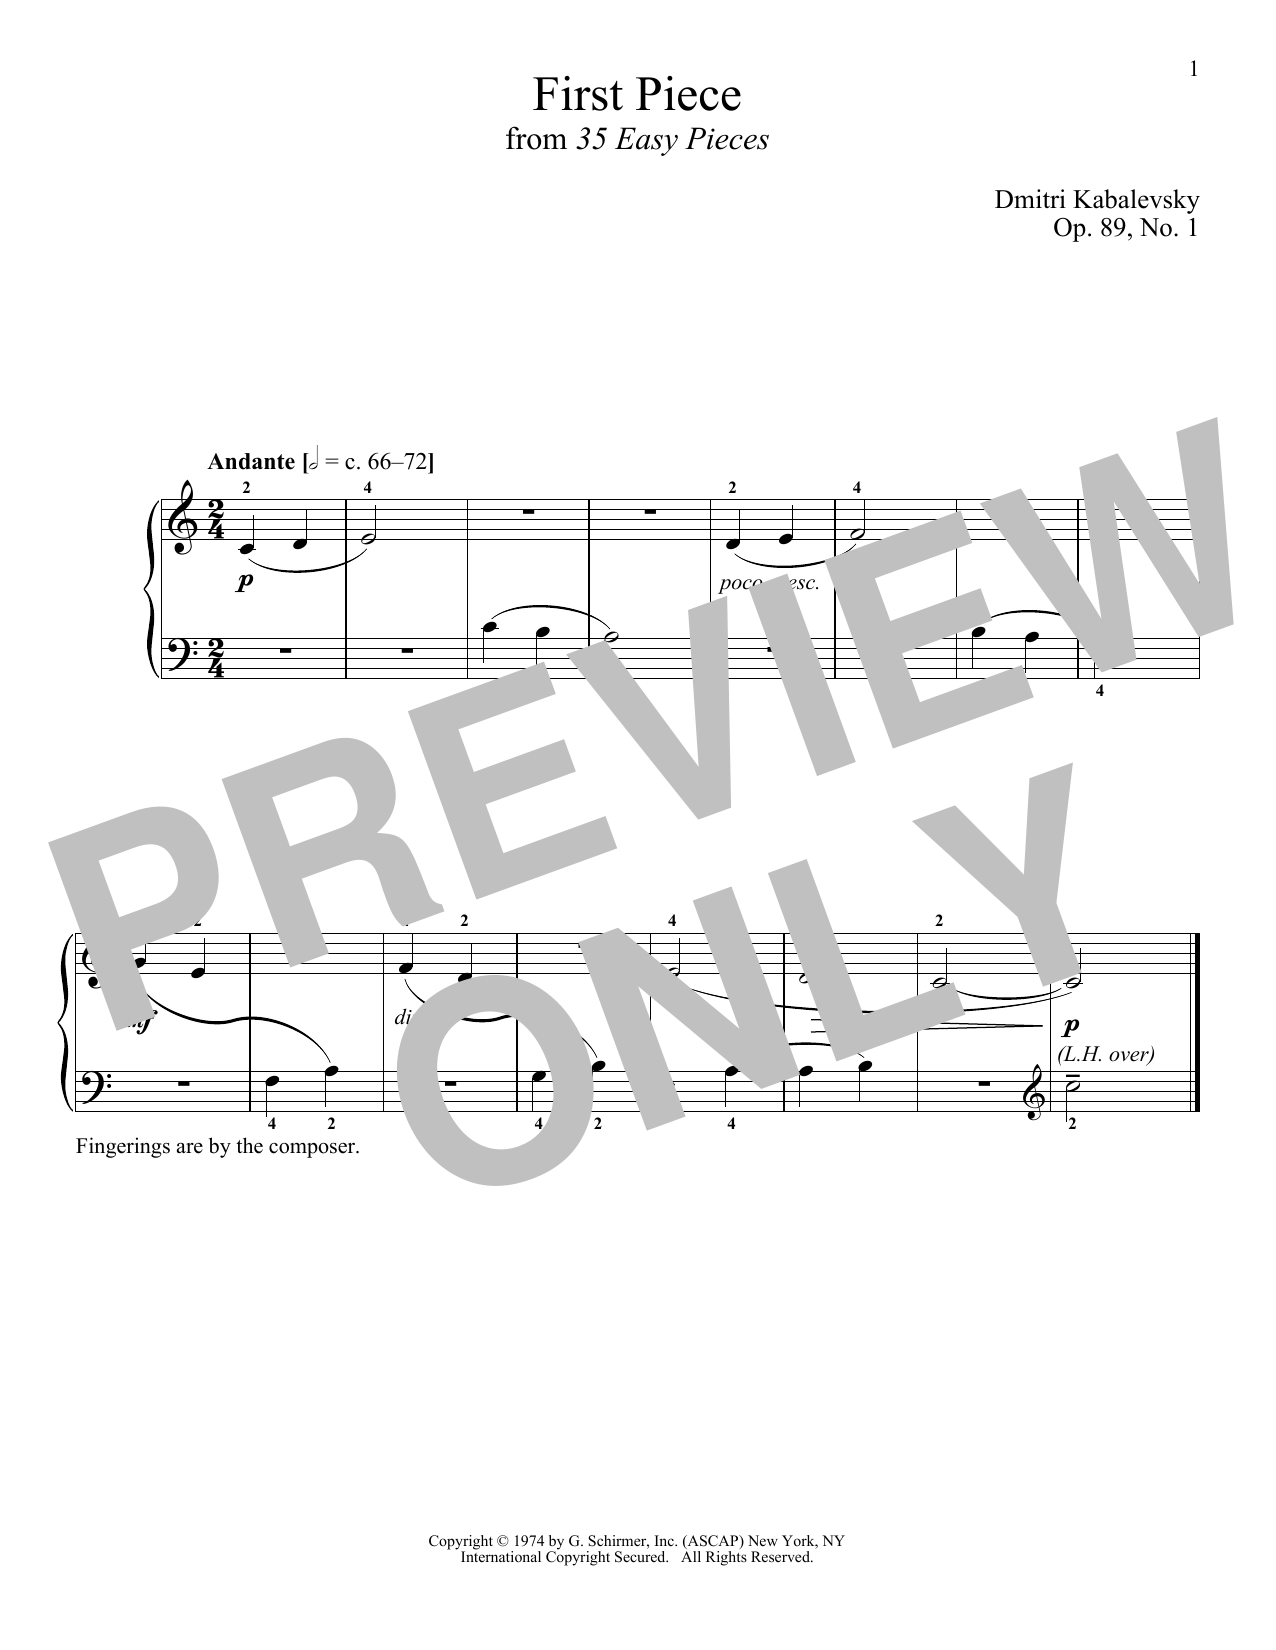 Dmitri Kabalevsky First Piece, Op. 89, No. 1 sheet music notes and chords. Download Printable PDF.